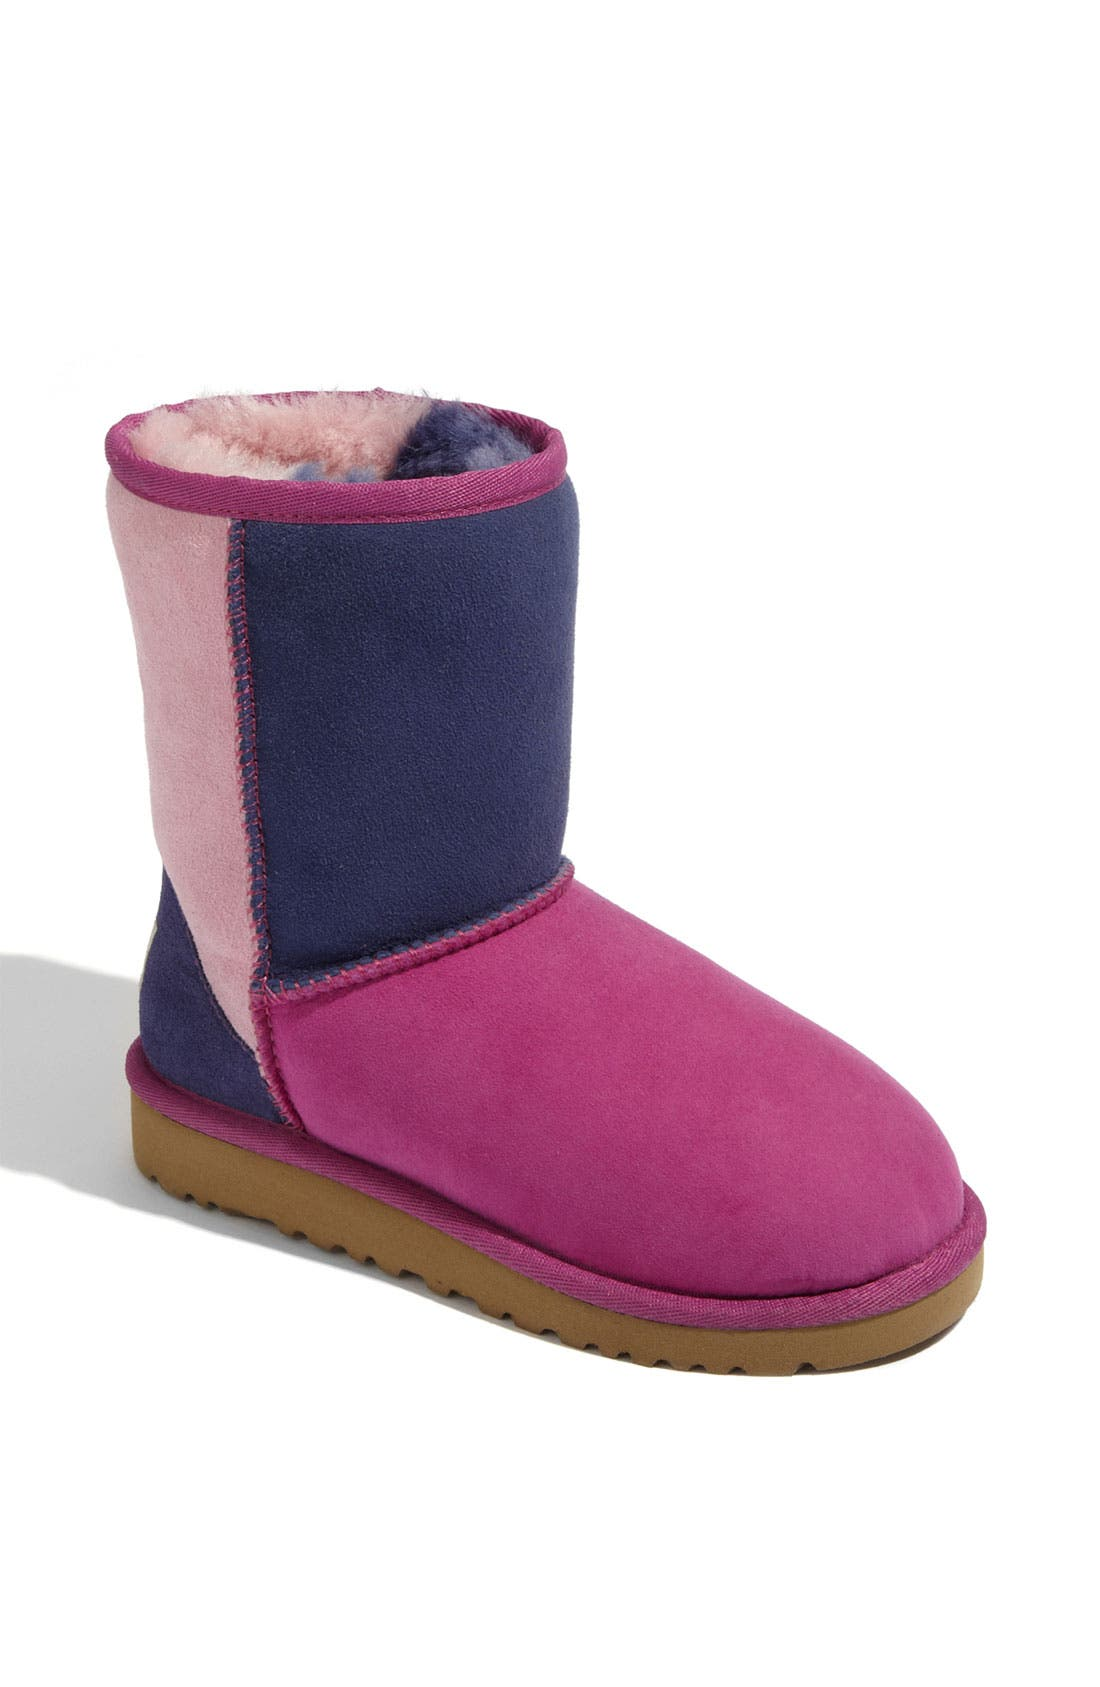 Main Image - UGG® 'Classic Short - Patchwork' Boot (Walker)